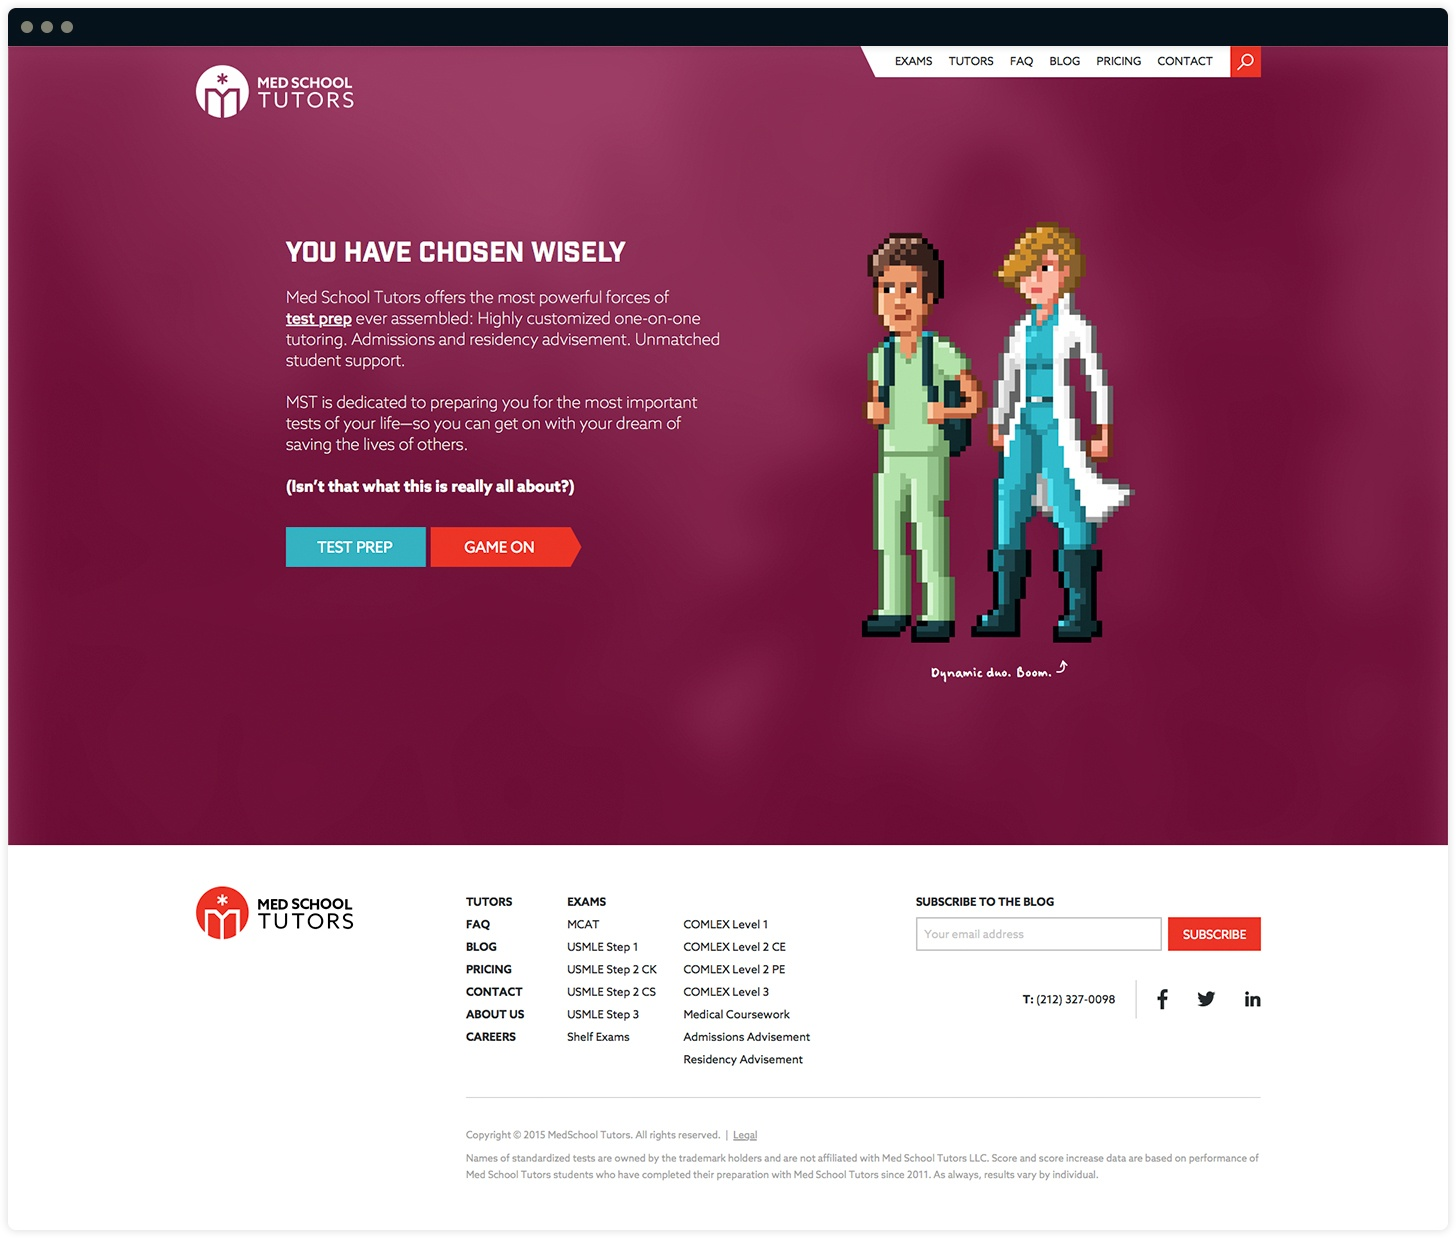 Med School Tutors Homepage Interactive Journey Design #2 by Salted Stone